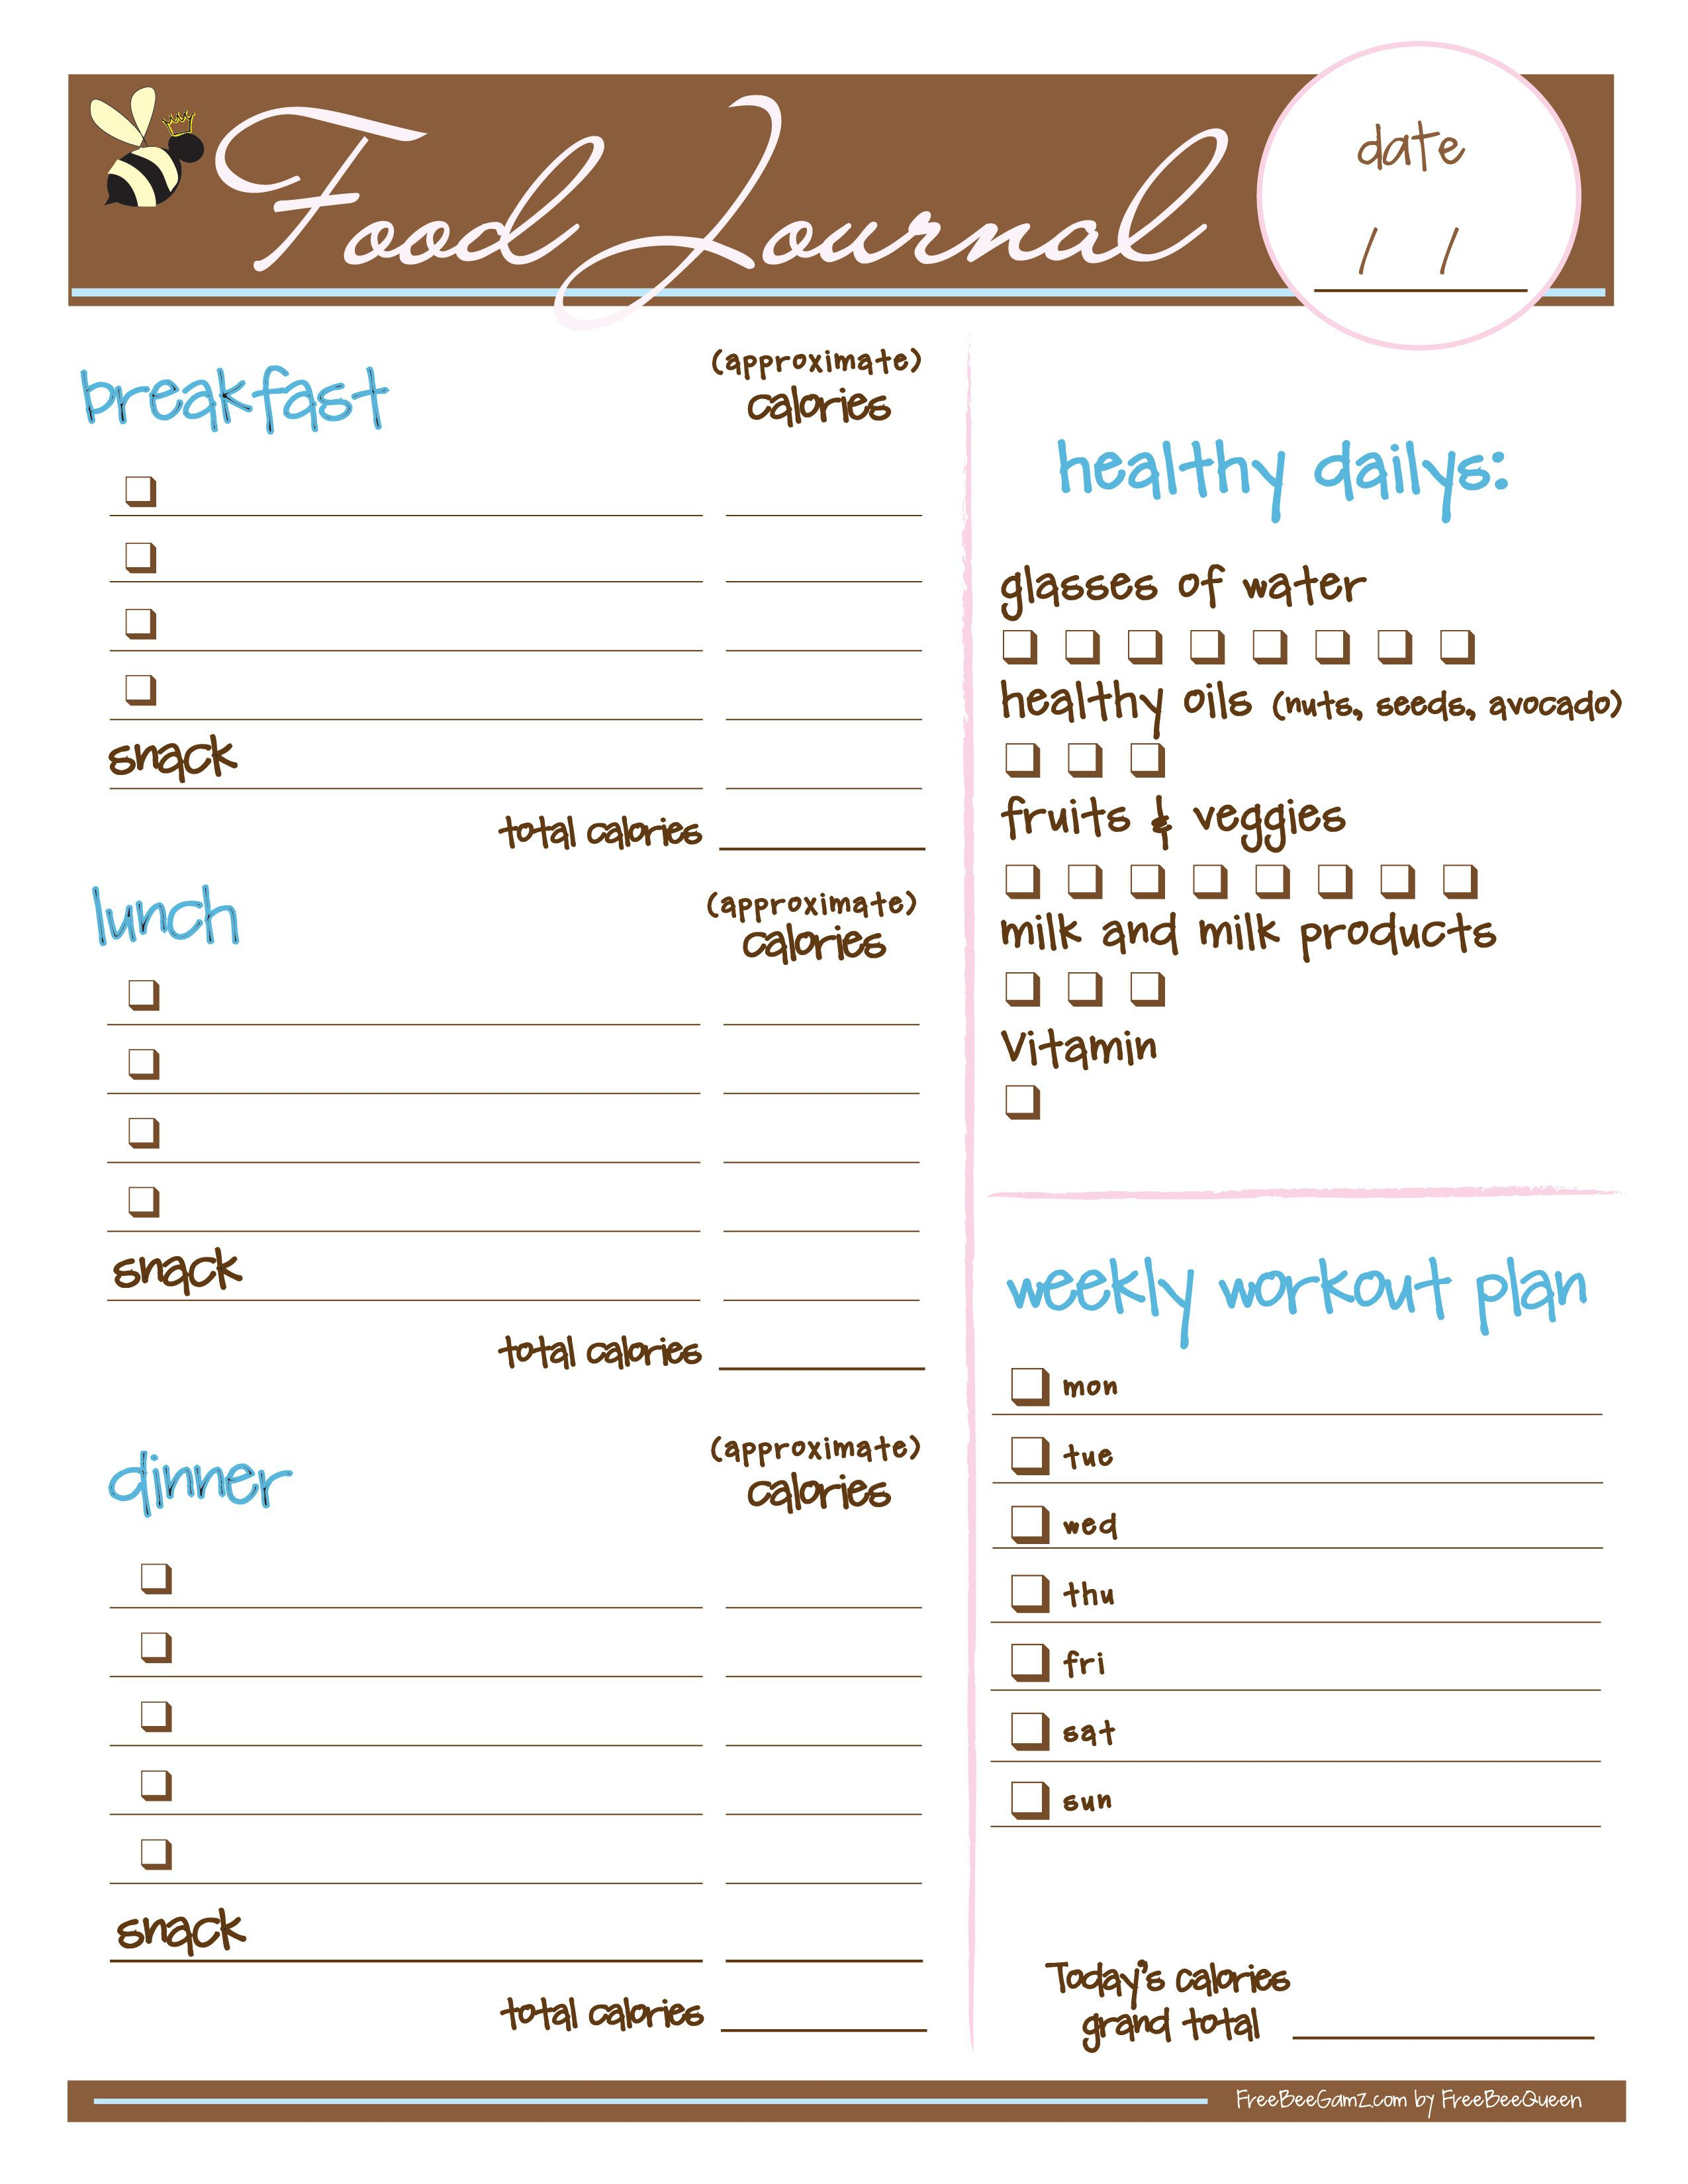 Free Food Journal. I Love This I Just Printed It And It Looks - Free Printable Calorie Counter Journal